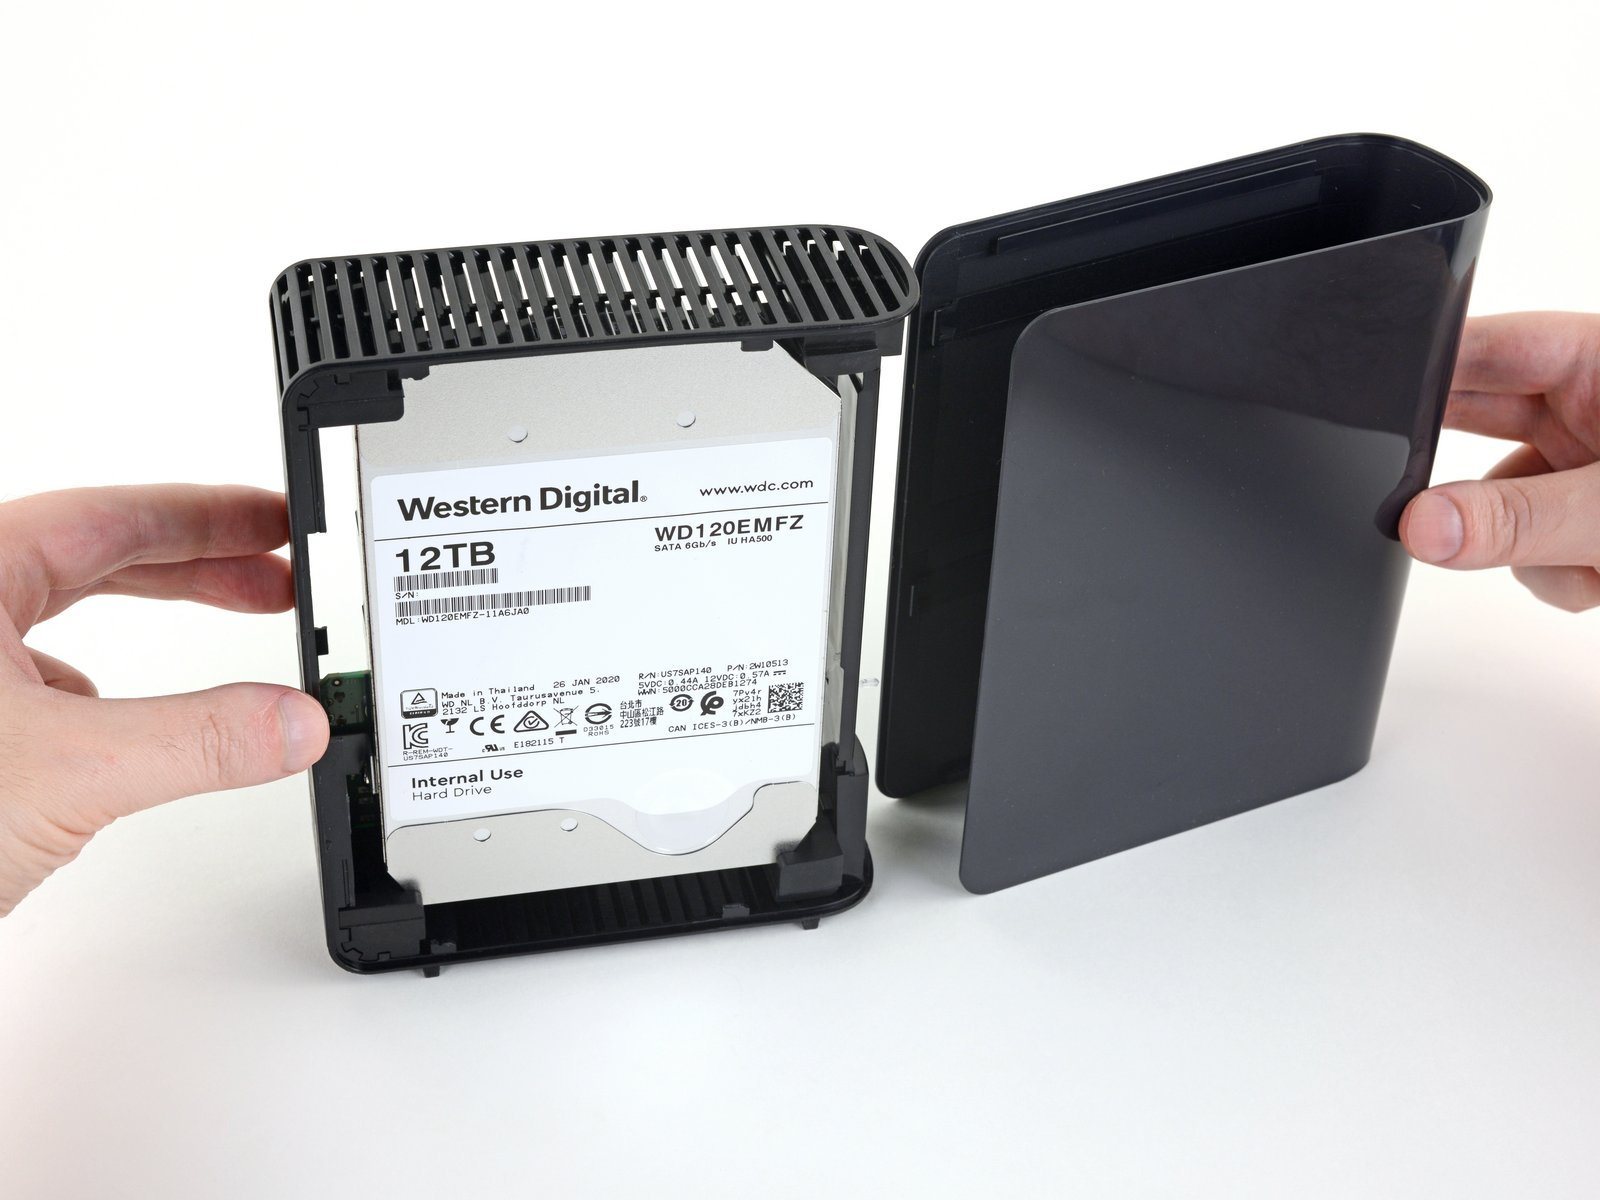 Removing an internal drive from an external enclosure